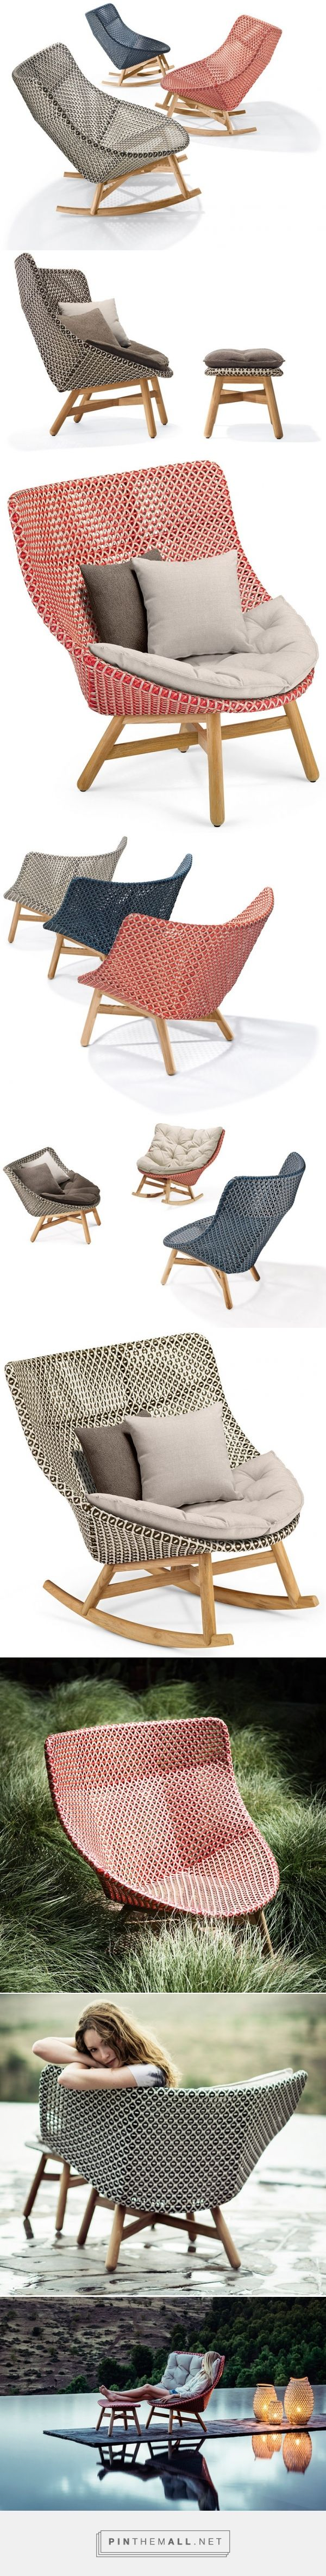 sebastian herkner's outdoor mbrace chair collection for dedon at imm cologne - created via https://pinthemall.net